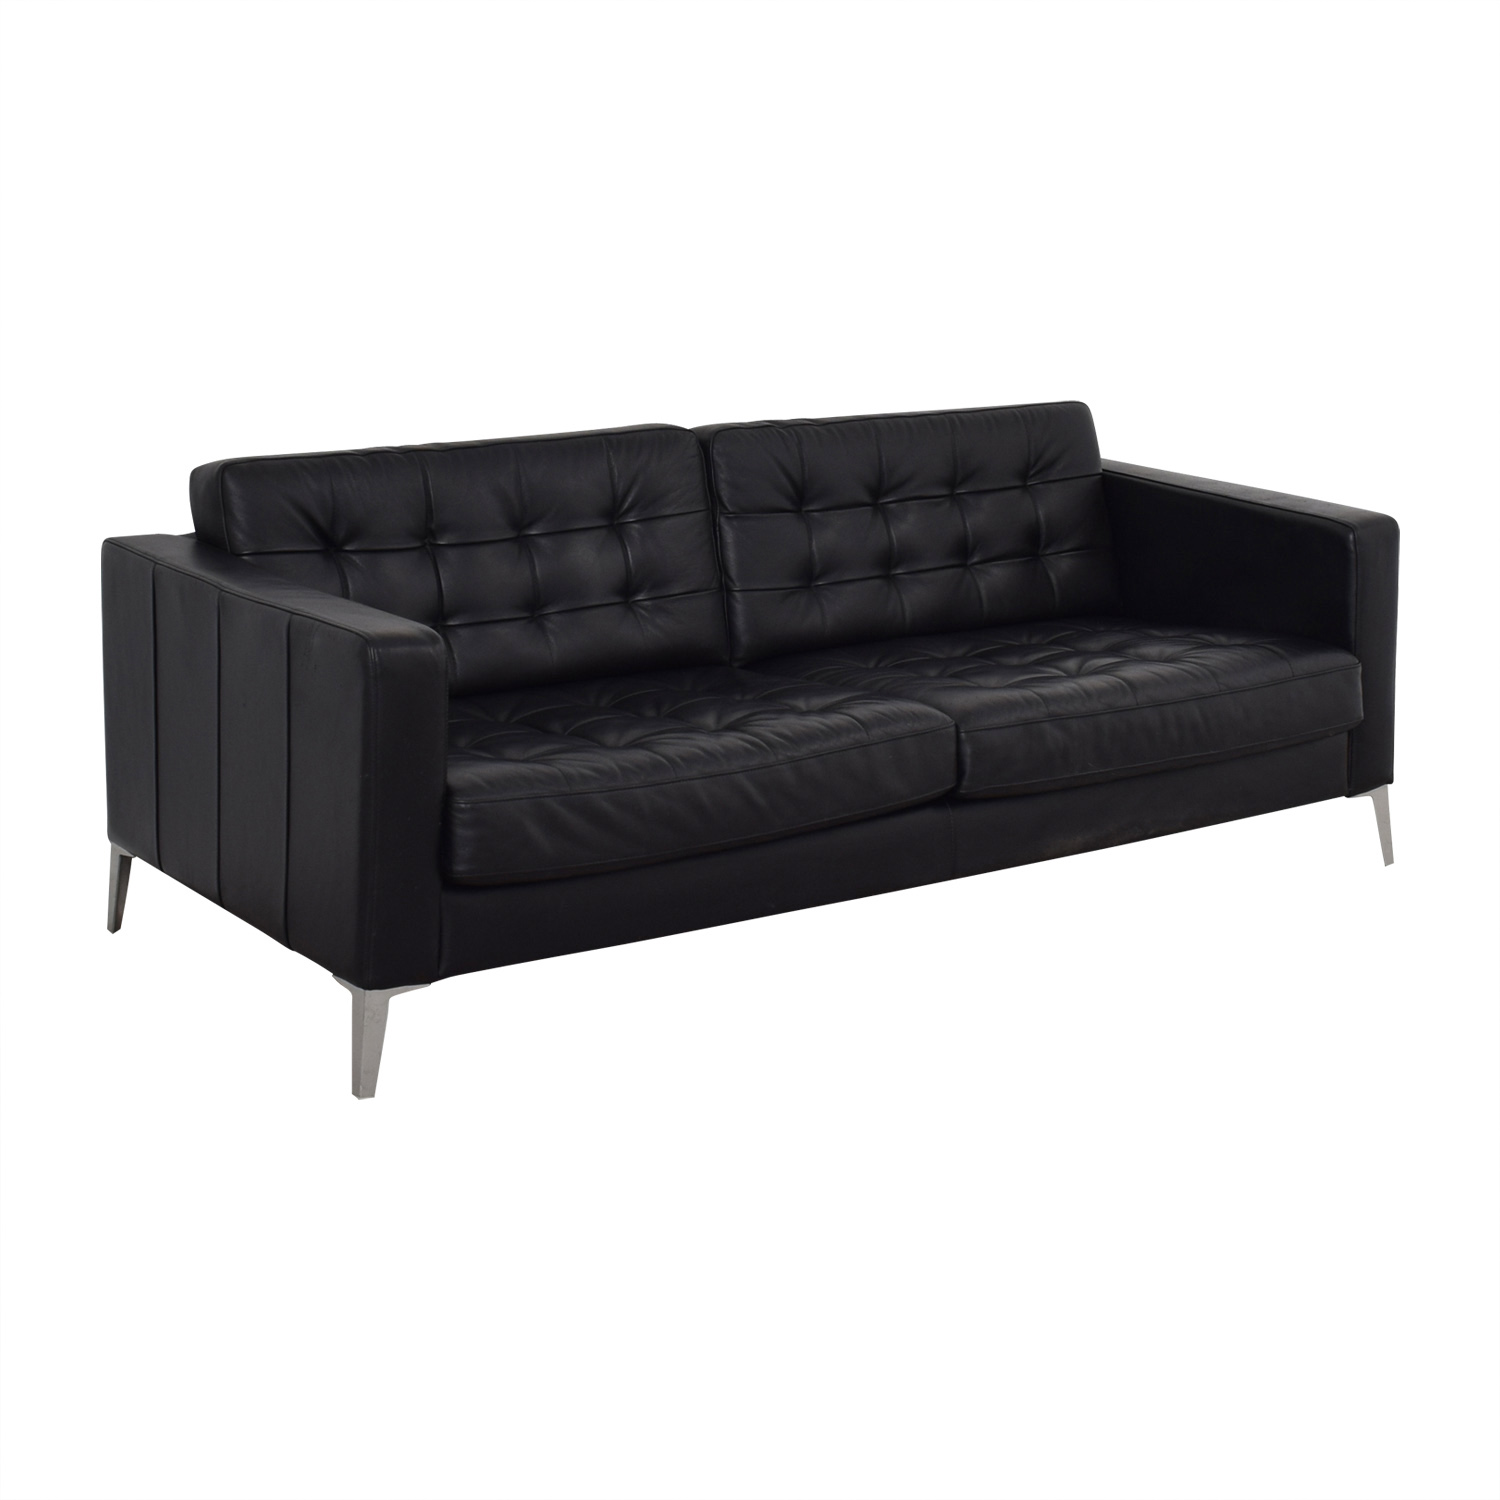 Couches In Ikea 78 Off Ikea Ikea Black Tufted Two Cushion Sofa Sofas